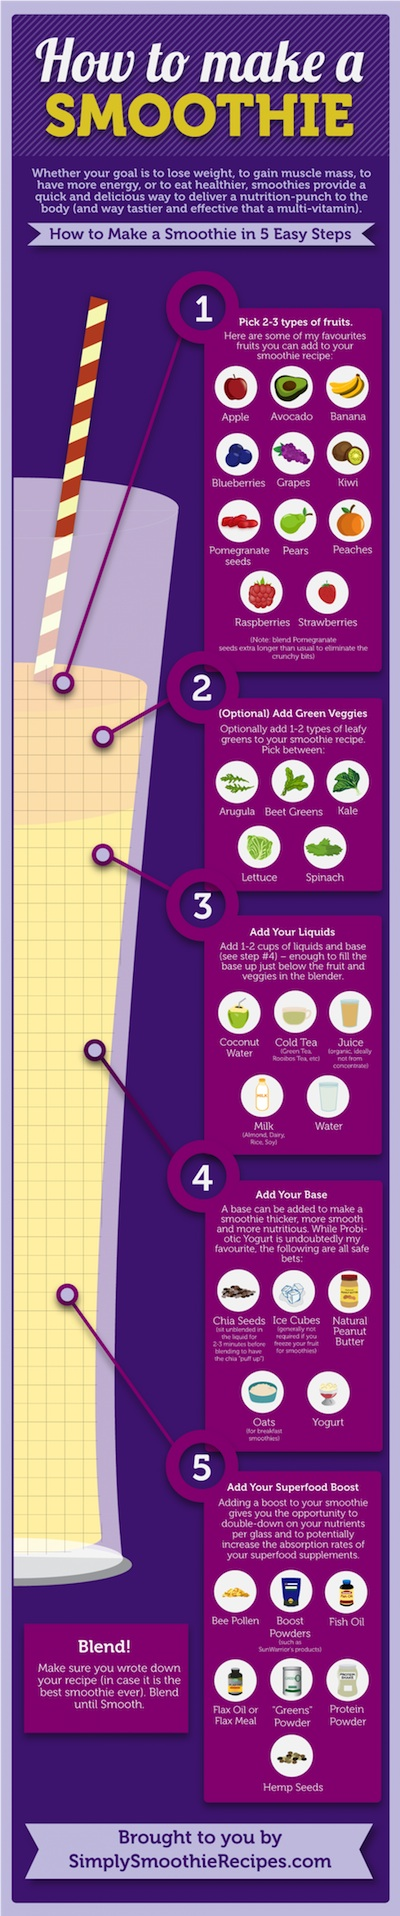 Smoothie Guide Infographic